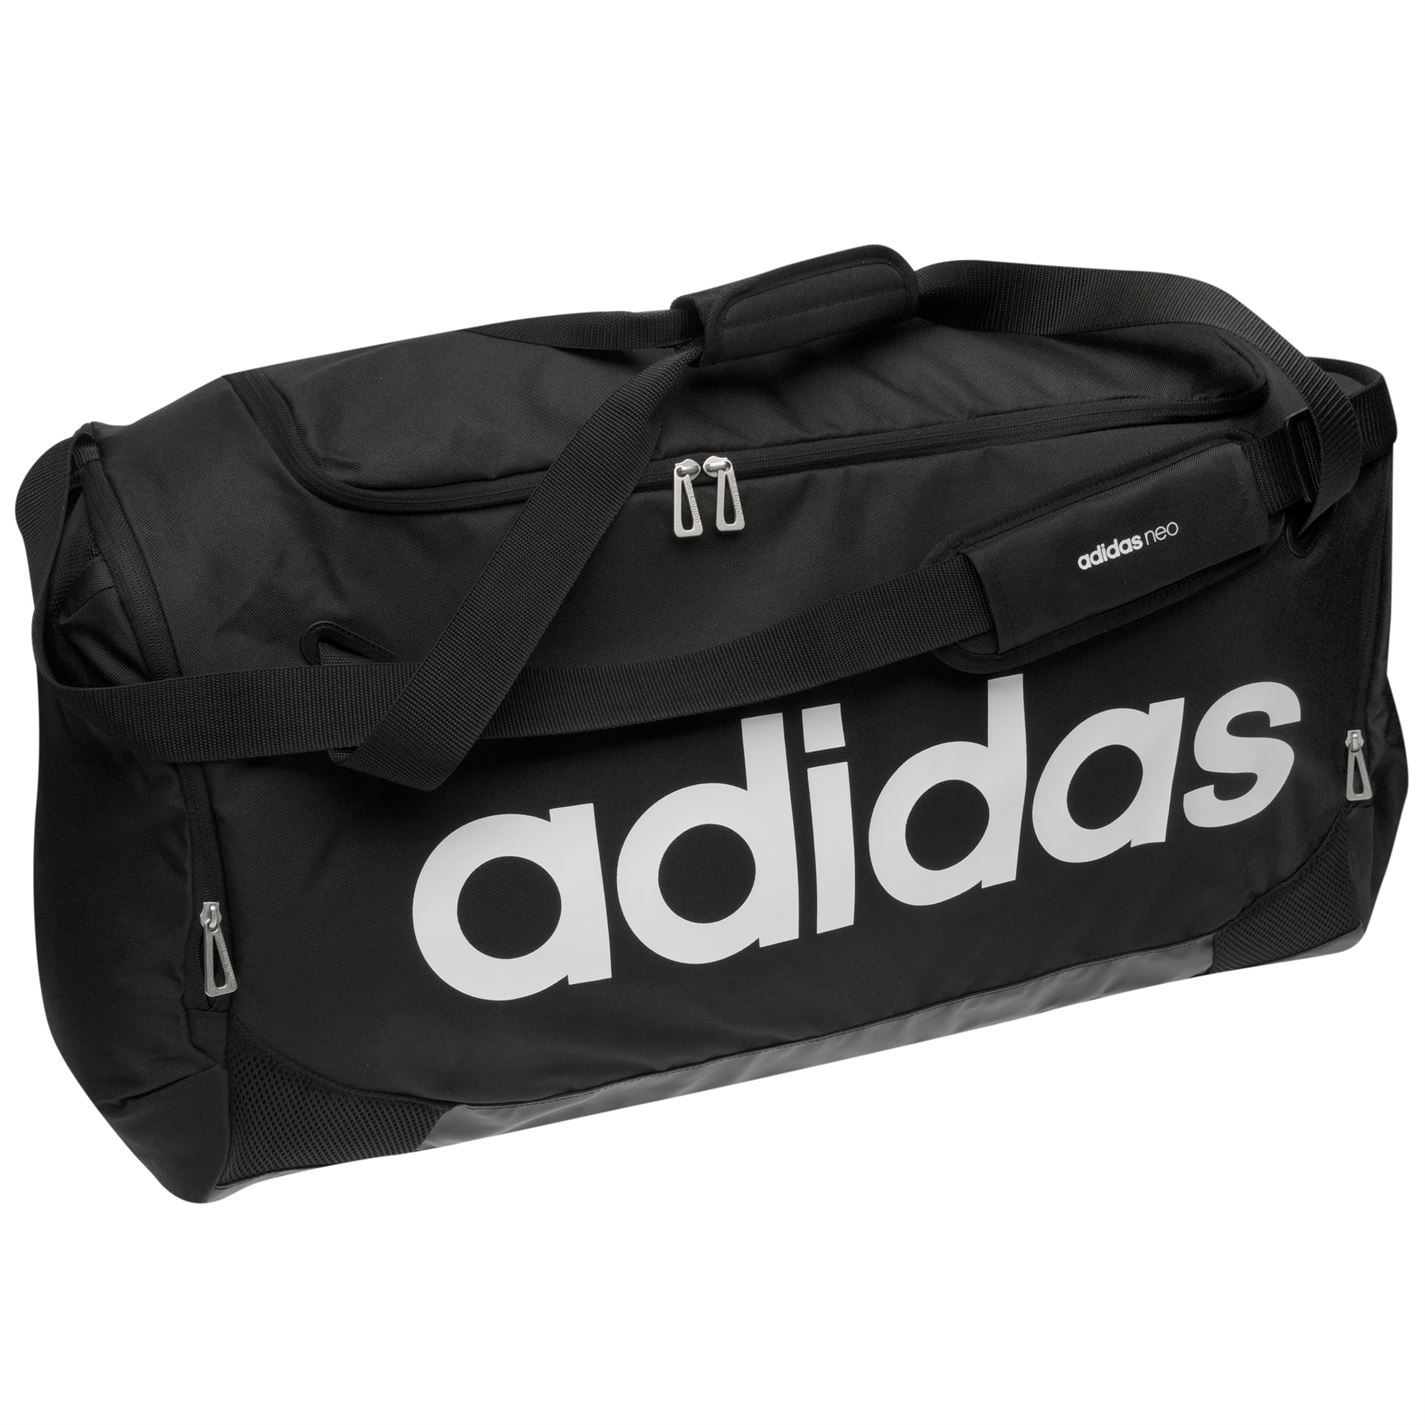 4604cfa7 Details about Adidas Linear Team Bag Large Black Sports Gymbag Kitbag